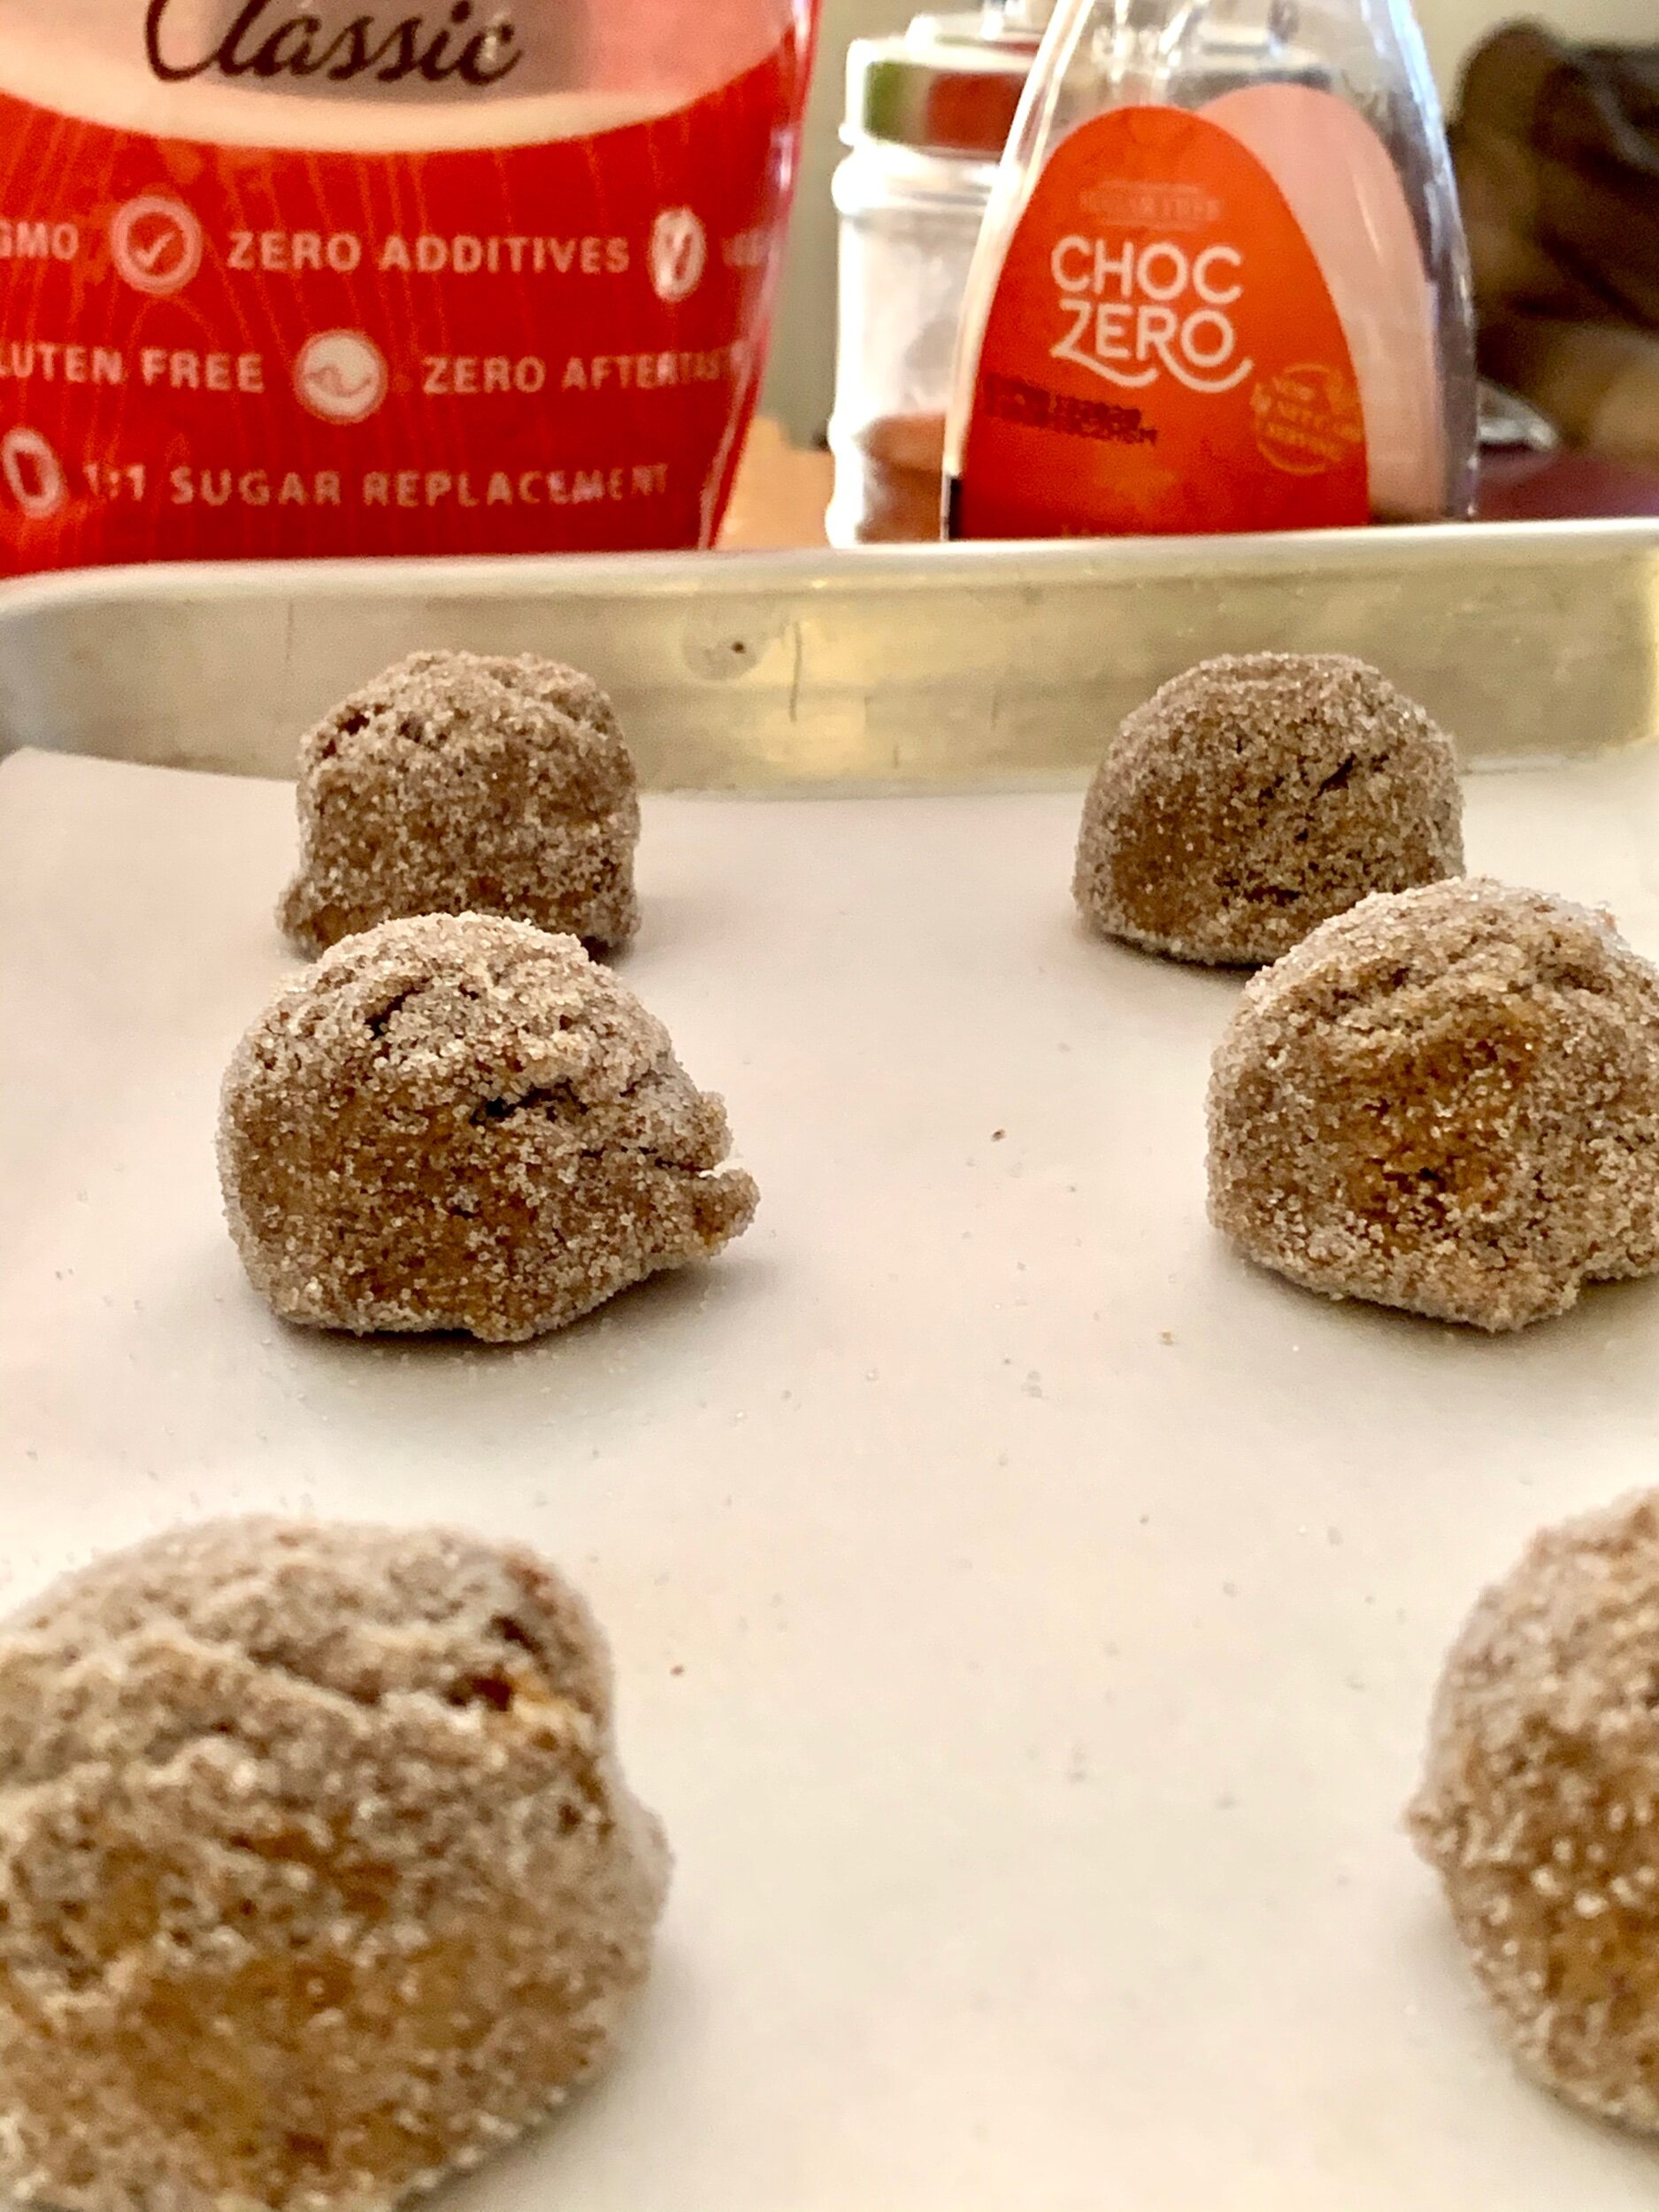 Roll each cookie dough ball in sweetener to completely coat for crispy crunch!